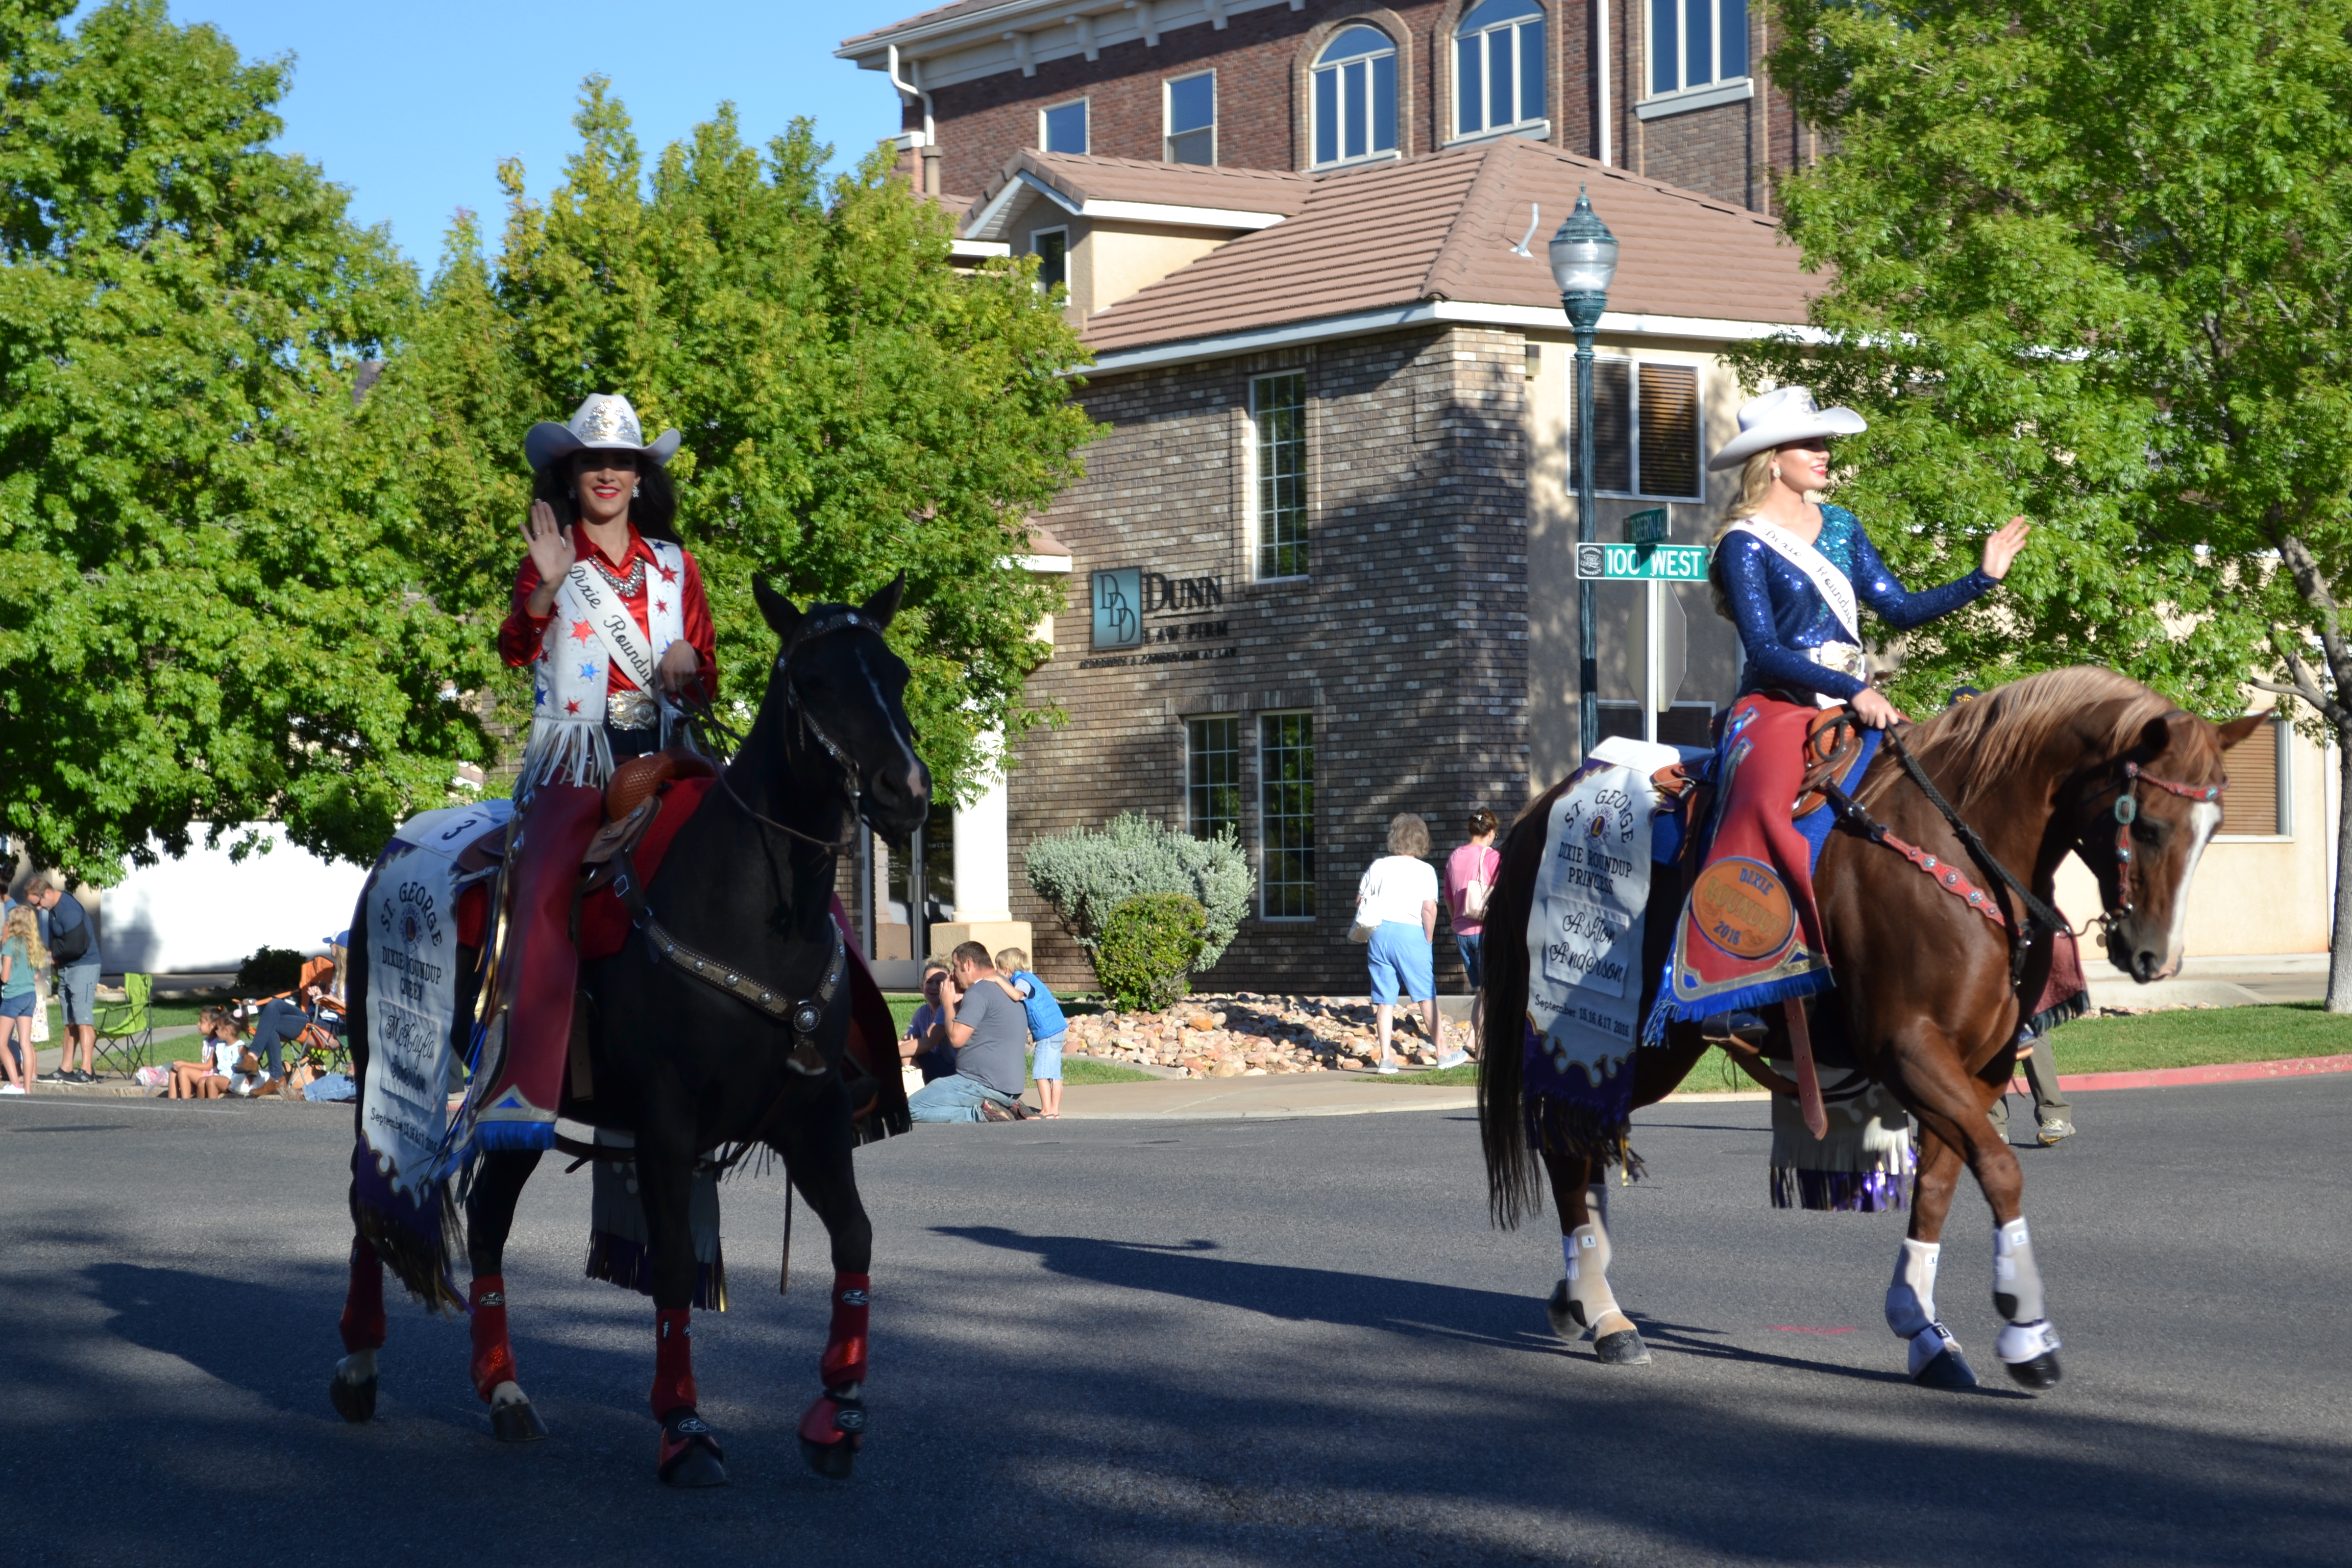 Dixie Roundup Queen McKayla Jimmerson and Princess Ashton Anderson ride horseback along the parade route, St. George, Utah, Sept. 17, 2016 | Photo by Joseph Witham, St. George News